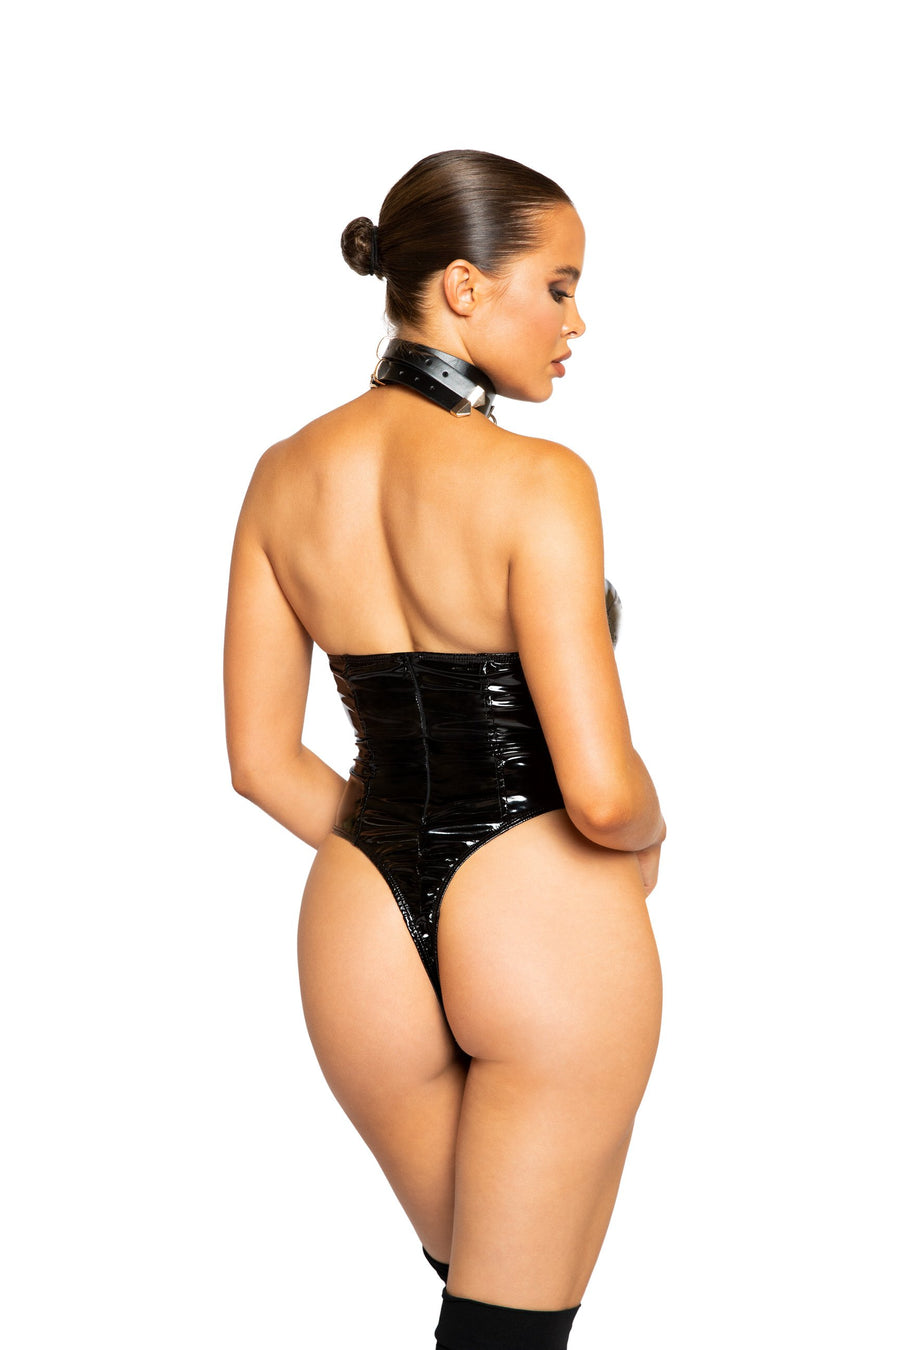 LI363 - High-Cut Vinyl Bodysuit